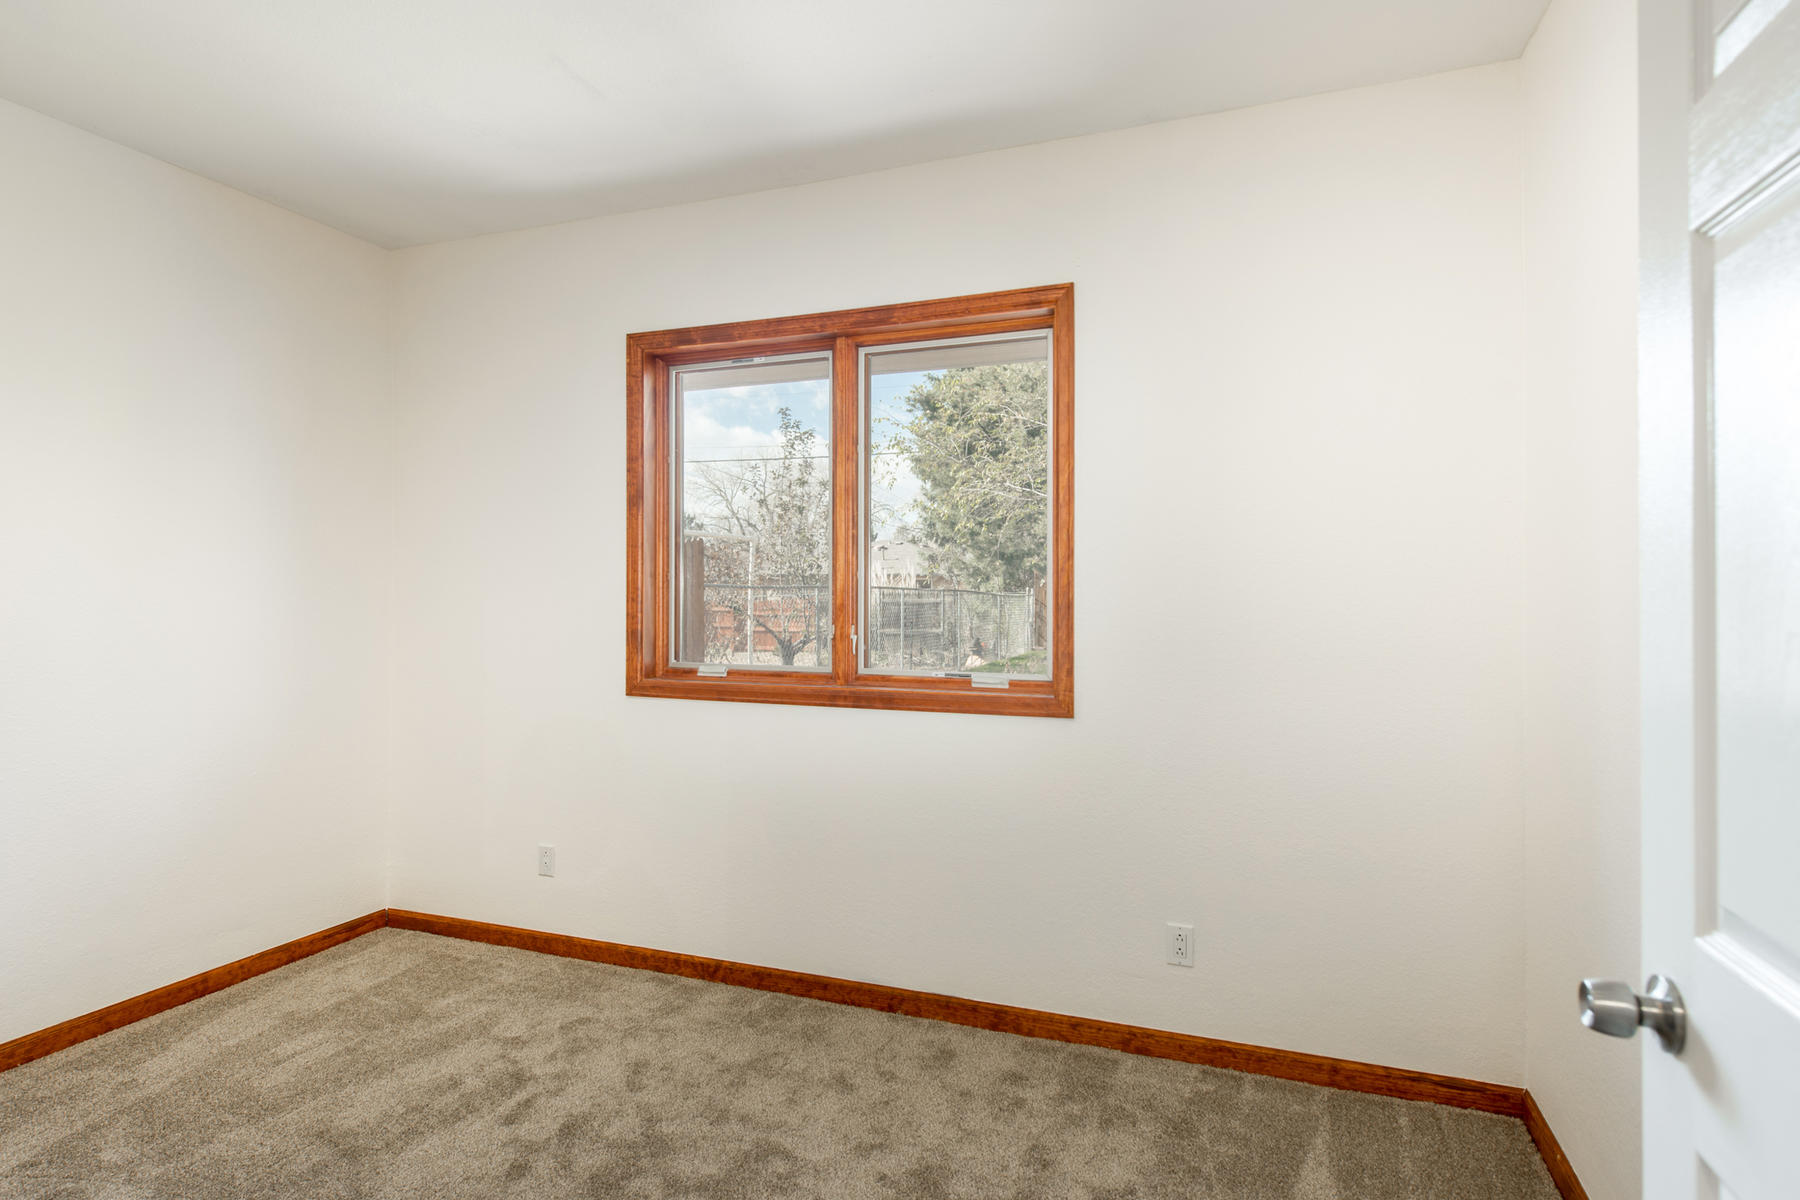 Additional photo for property listing at Wonderful remodeled home: everything here is new! 2921 S Corona St Englewood, Colorado 80113 United States